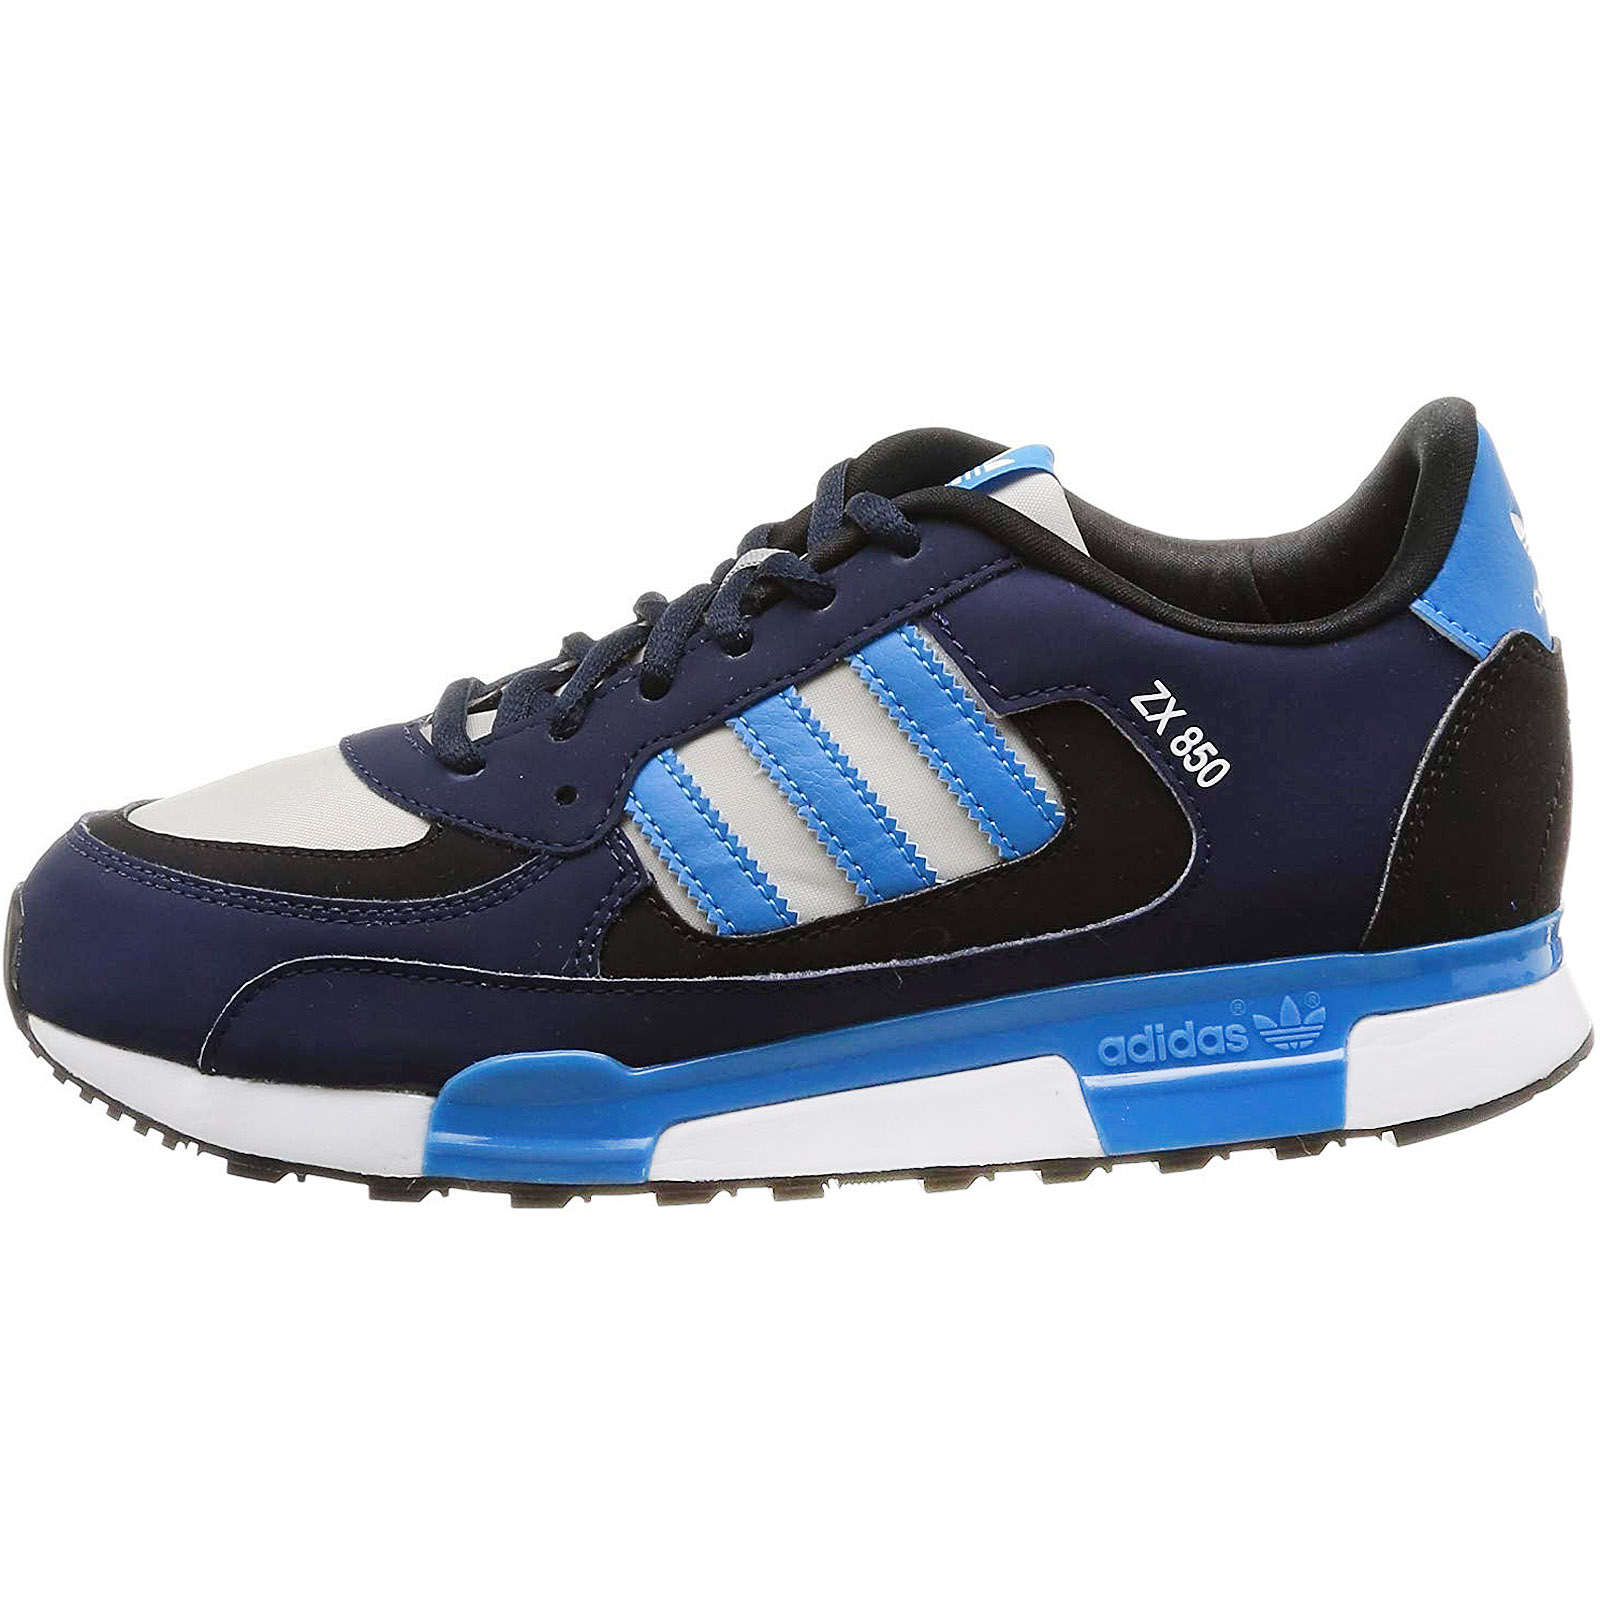 more photos 88d94 d98f1 Details about adidas Originals Childrens Kids ZX 850 Casual Lace Up  Trainers Shoes - Navy